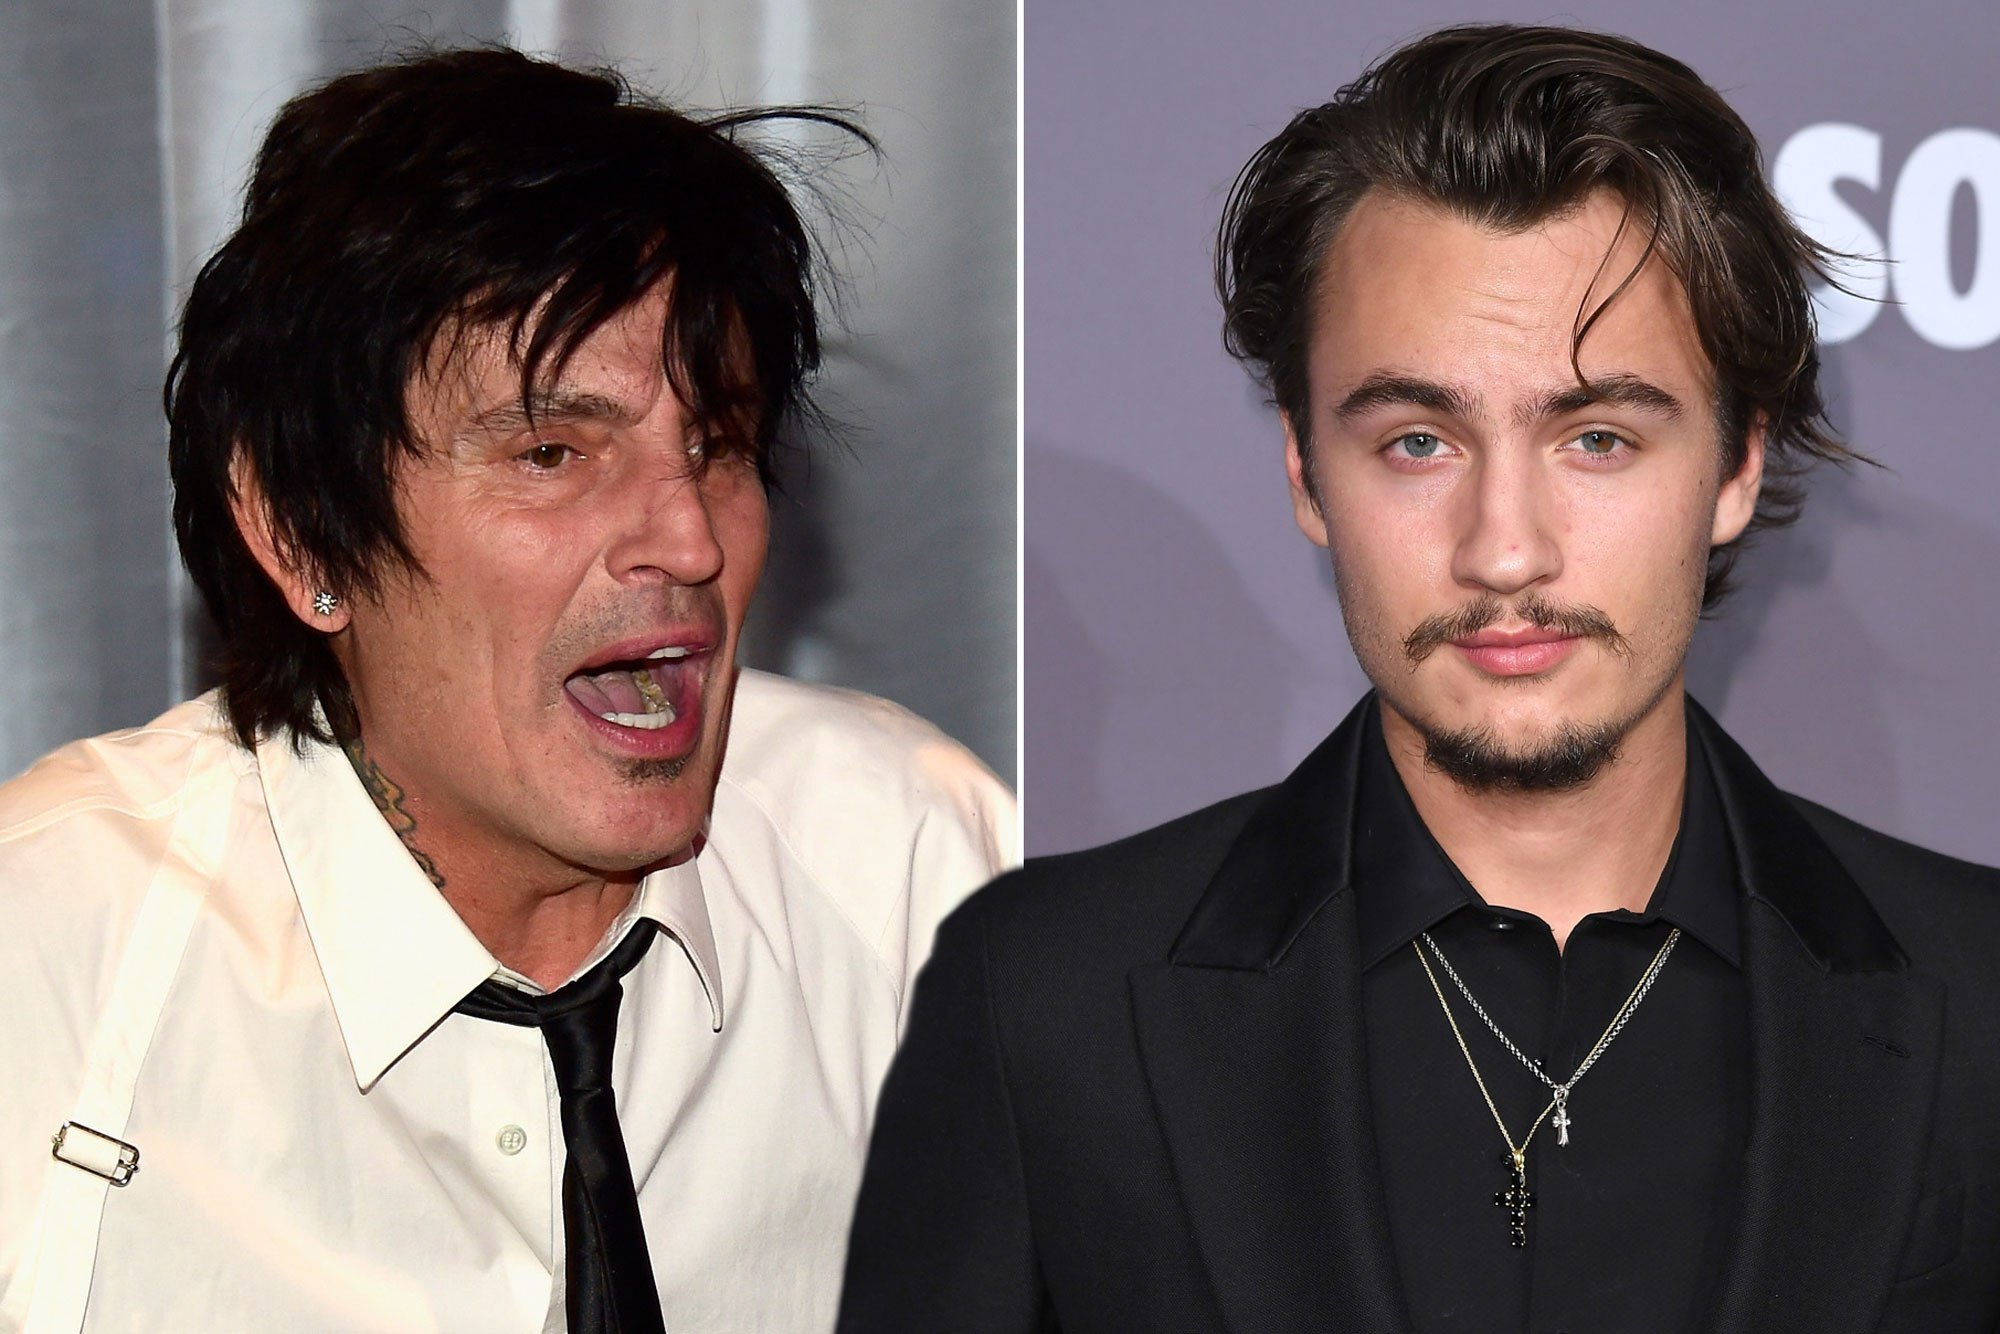 Tommy Lee and his son brawled over a tweet